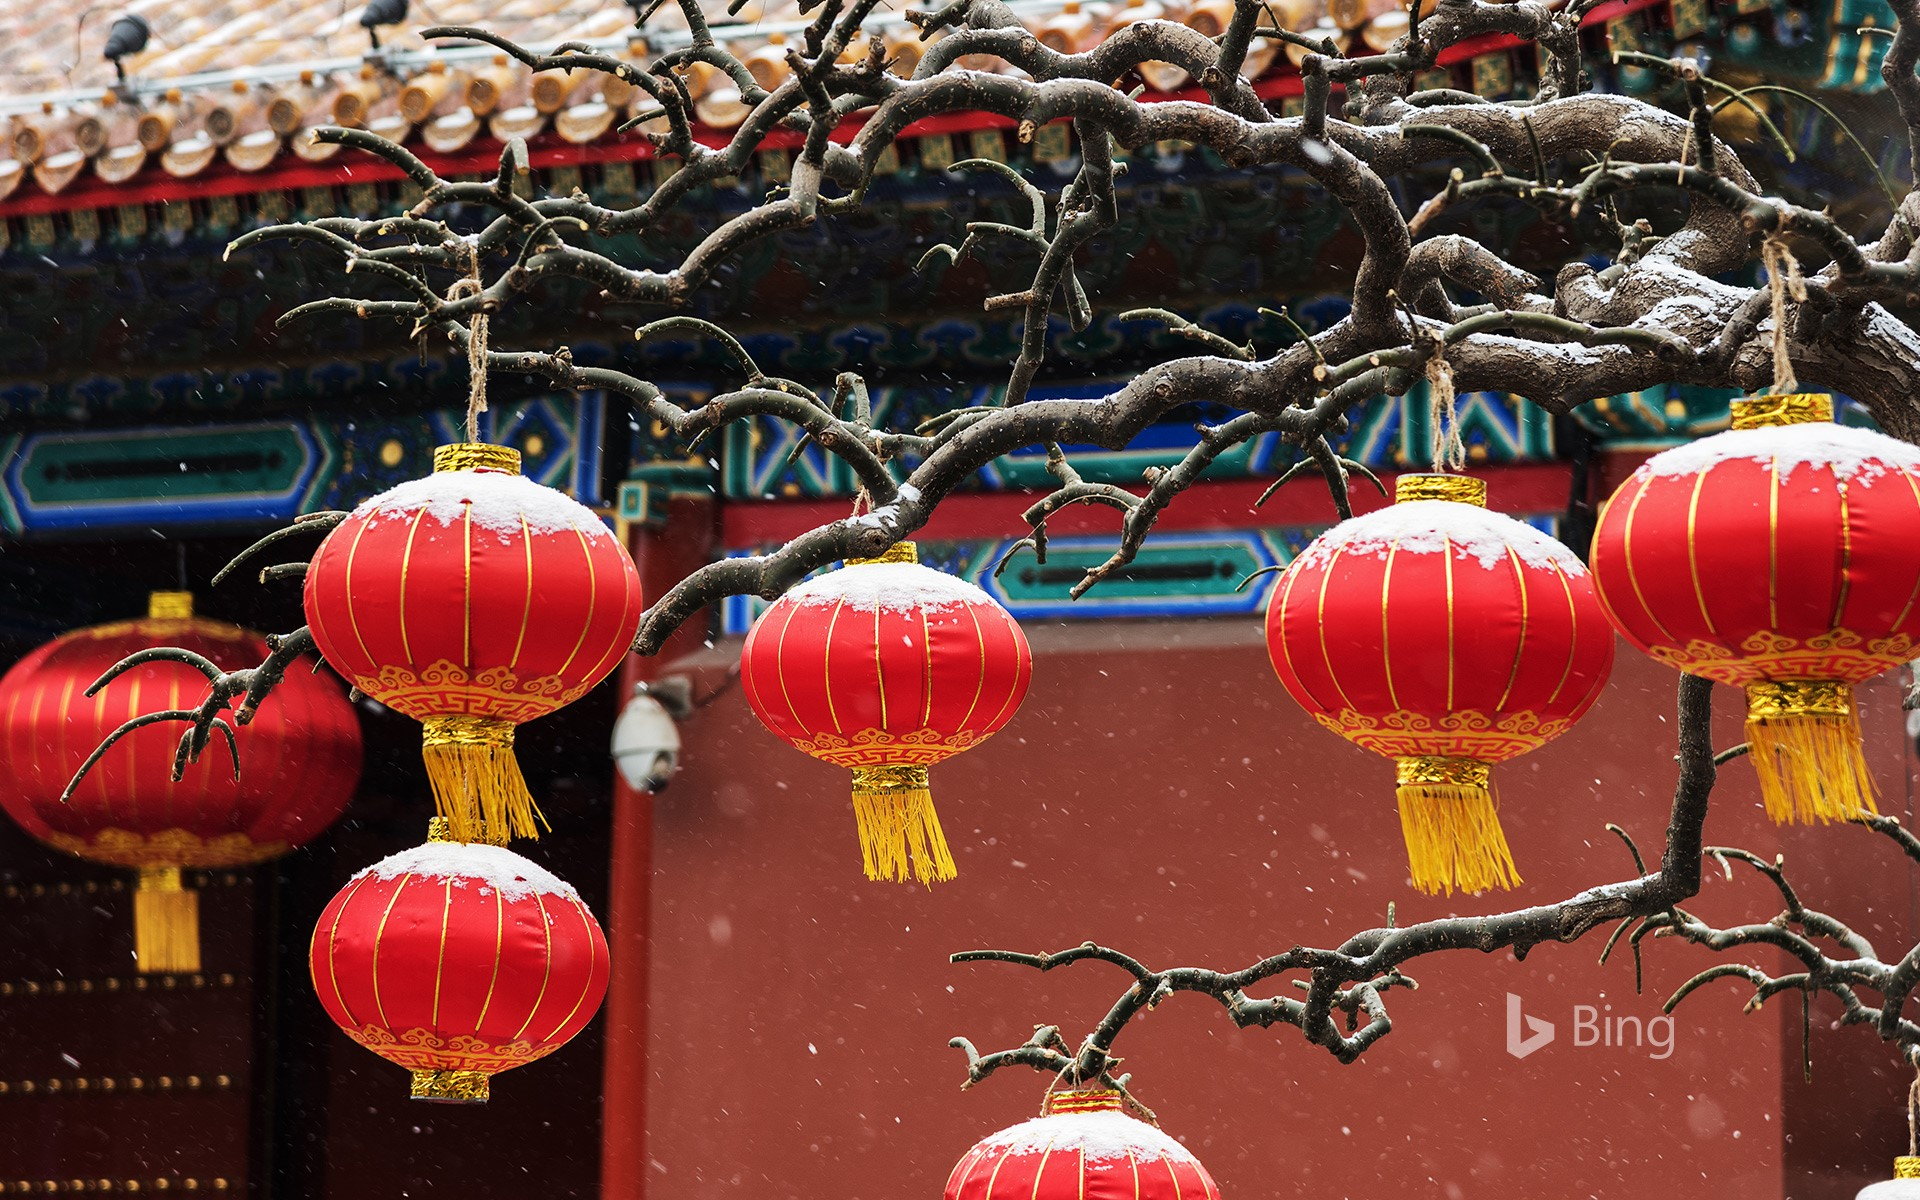 Red lanterns hanging on branches